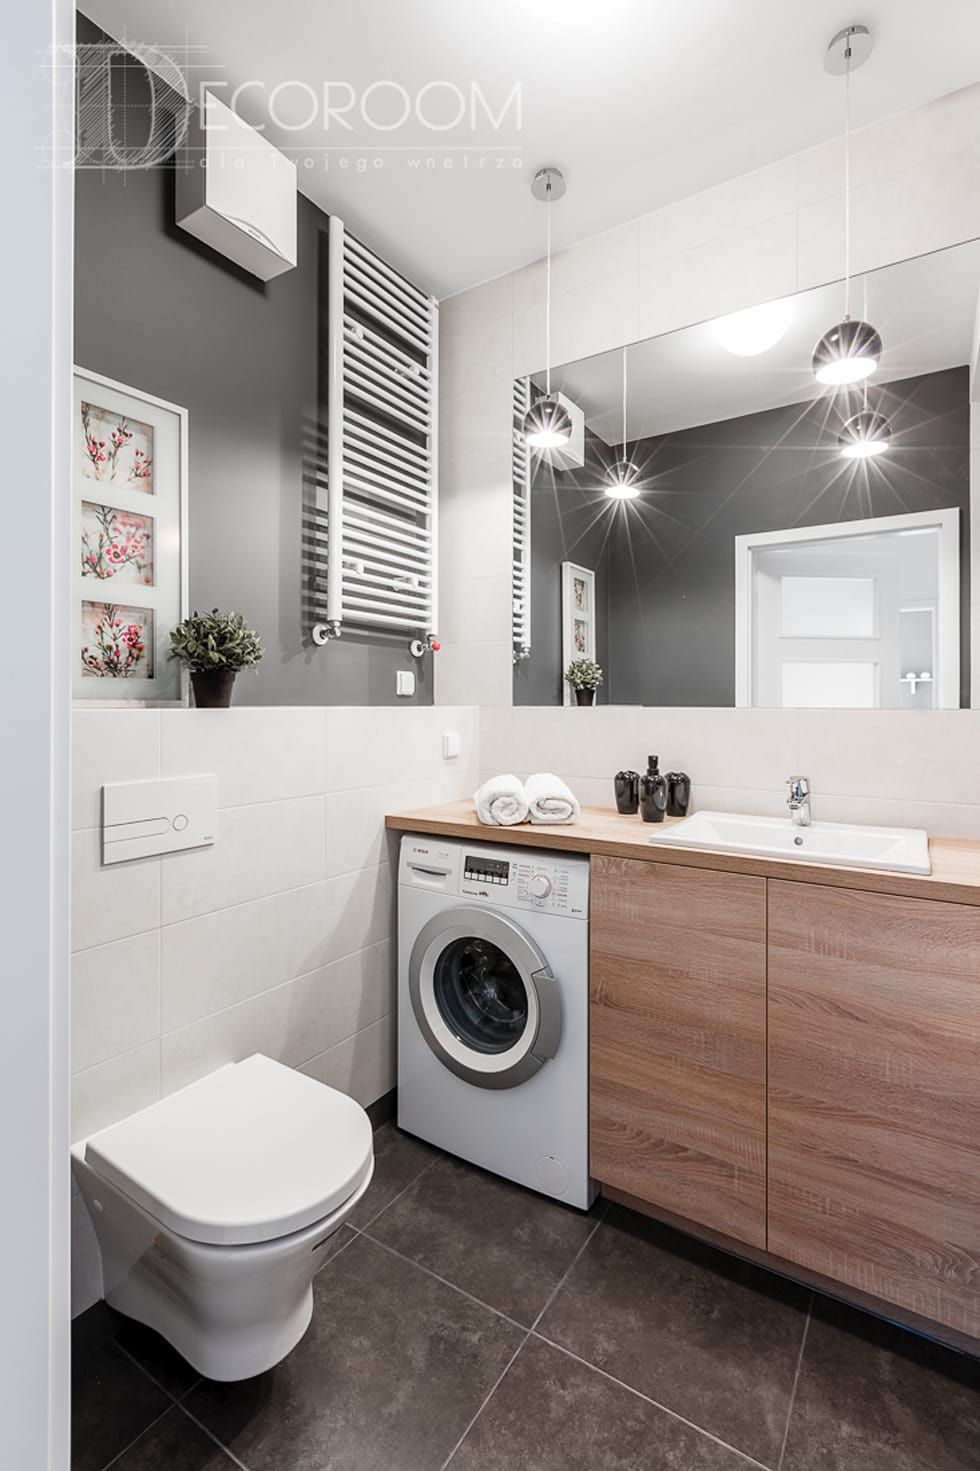 Bathrooms And Laundry Rooms Are Often The Most Neglected Parts Of Any House But You Cannot Bathroom Design Small Laundry Room Layouts Basement Bathroom Design